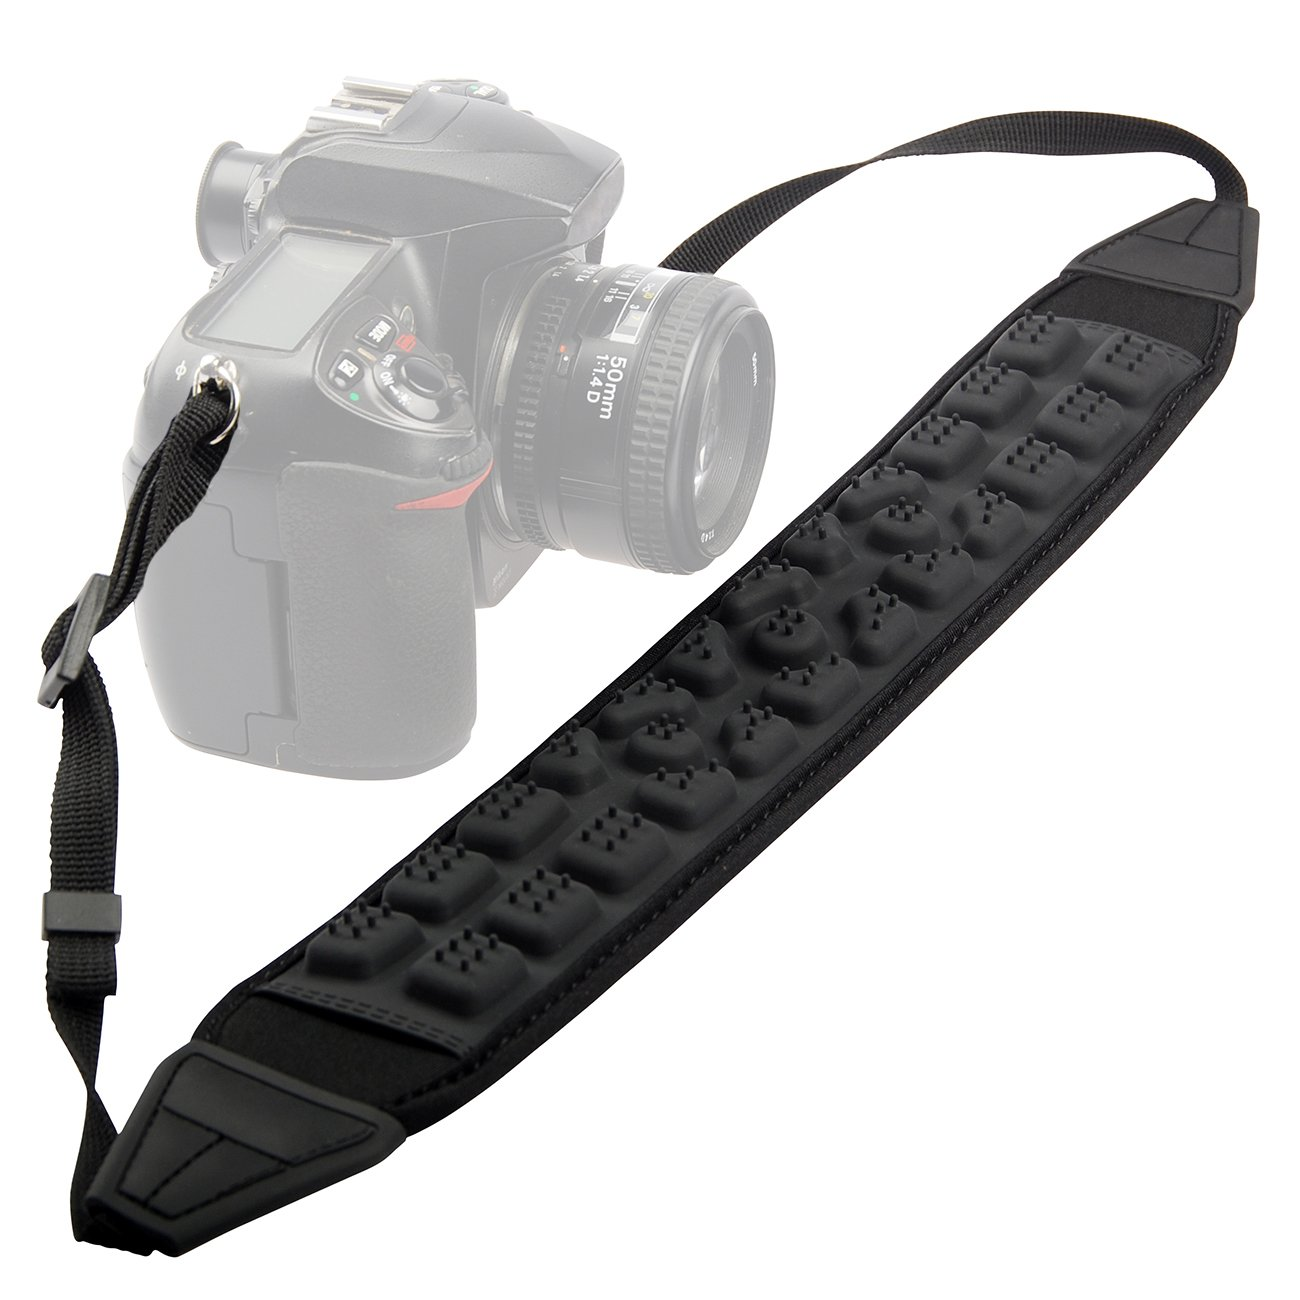 TARION LY-105 Pressure Reduction Decompression Massage Camera Shoulder Neck Strap for SLR DSLR Mirrorless Digital Camera Nikon Canon Sony Pentax